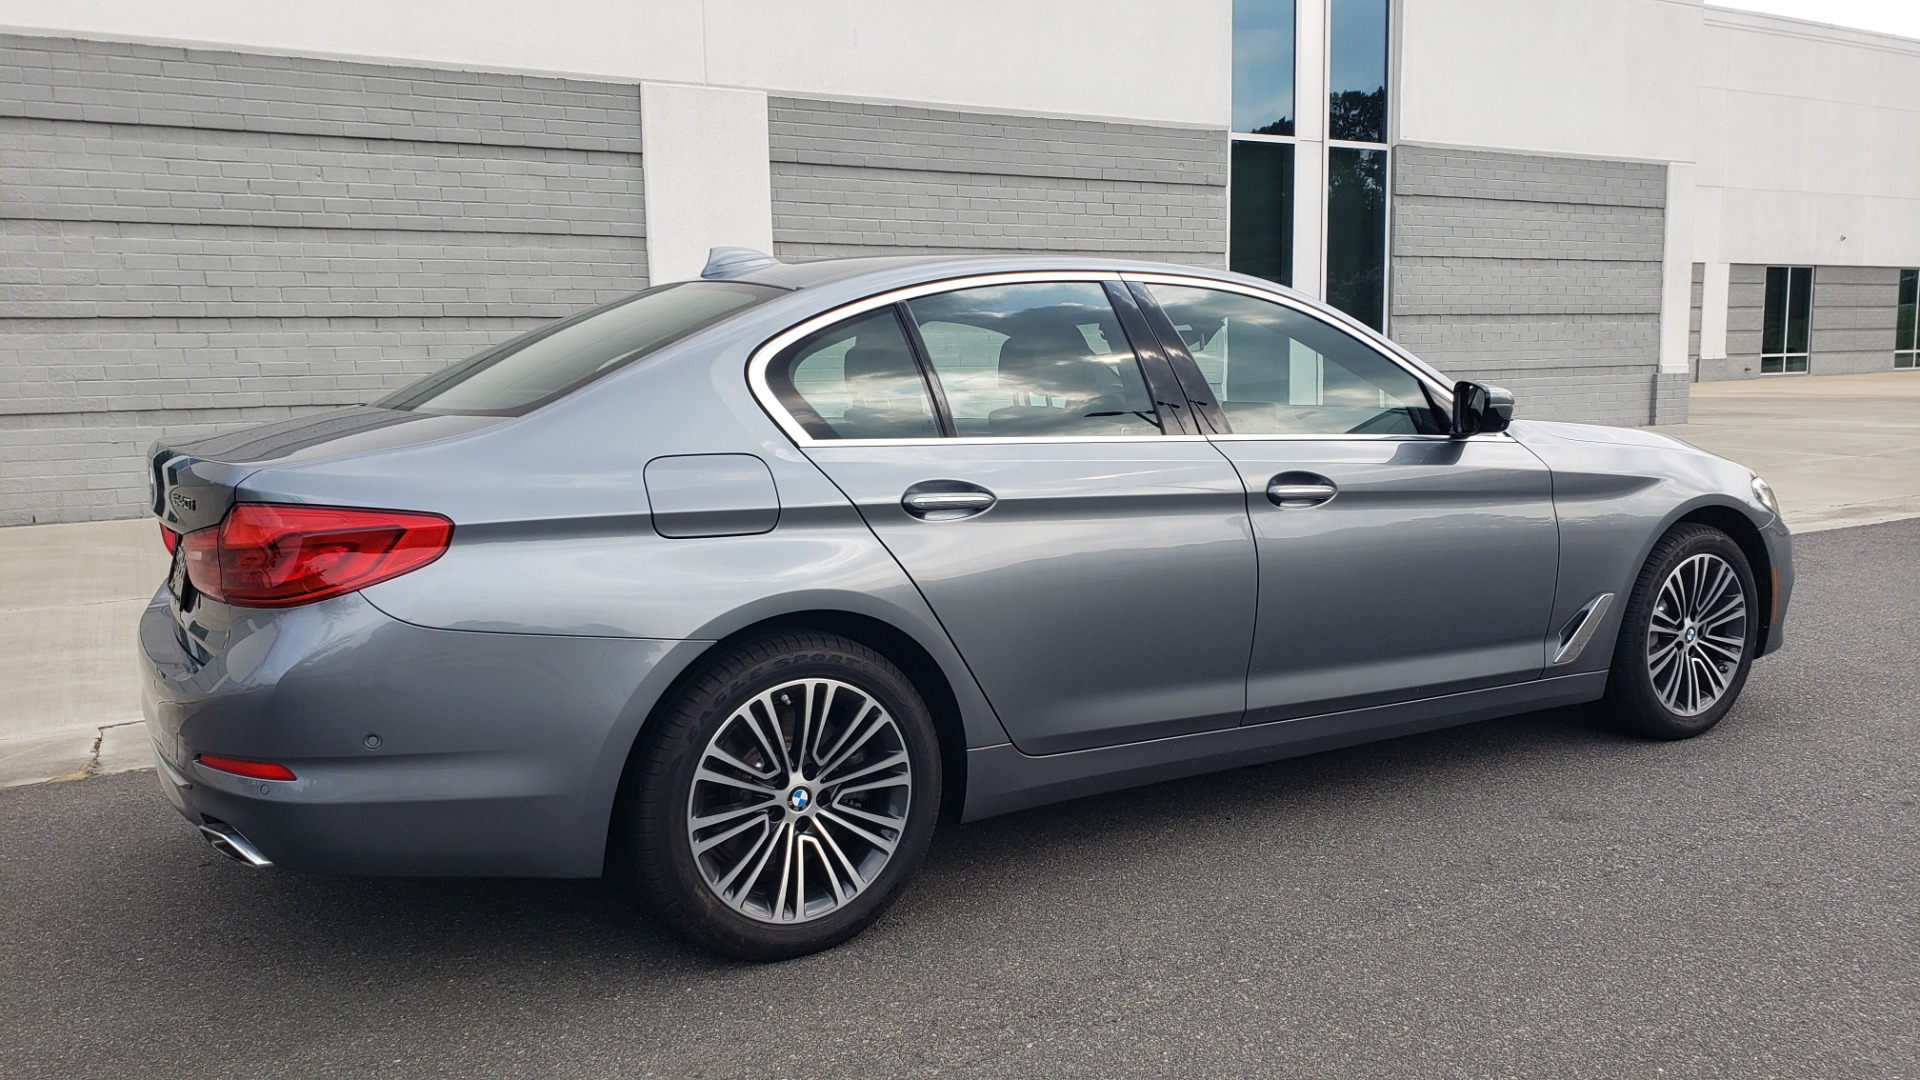 Used 2018 BMW 5 SERIES 540I XDRIVE PREMIUM / EXECUTIVE / LUXURY / H/K SND / REMOTE CONTROL PARKING for sale $40,995 at Formula Imports in Charlotte NC 28227 8